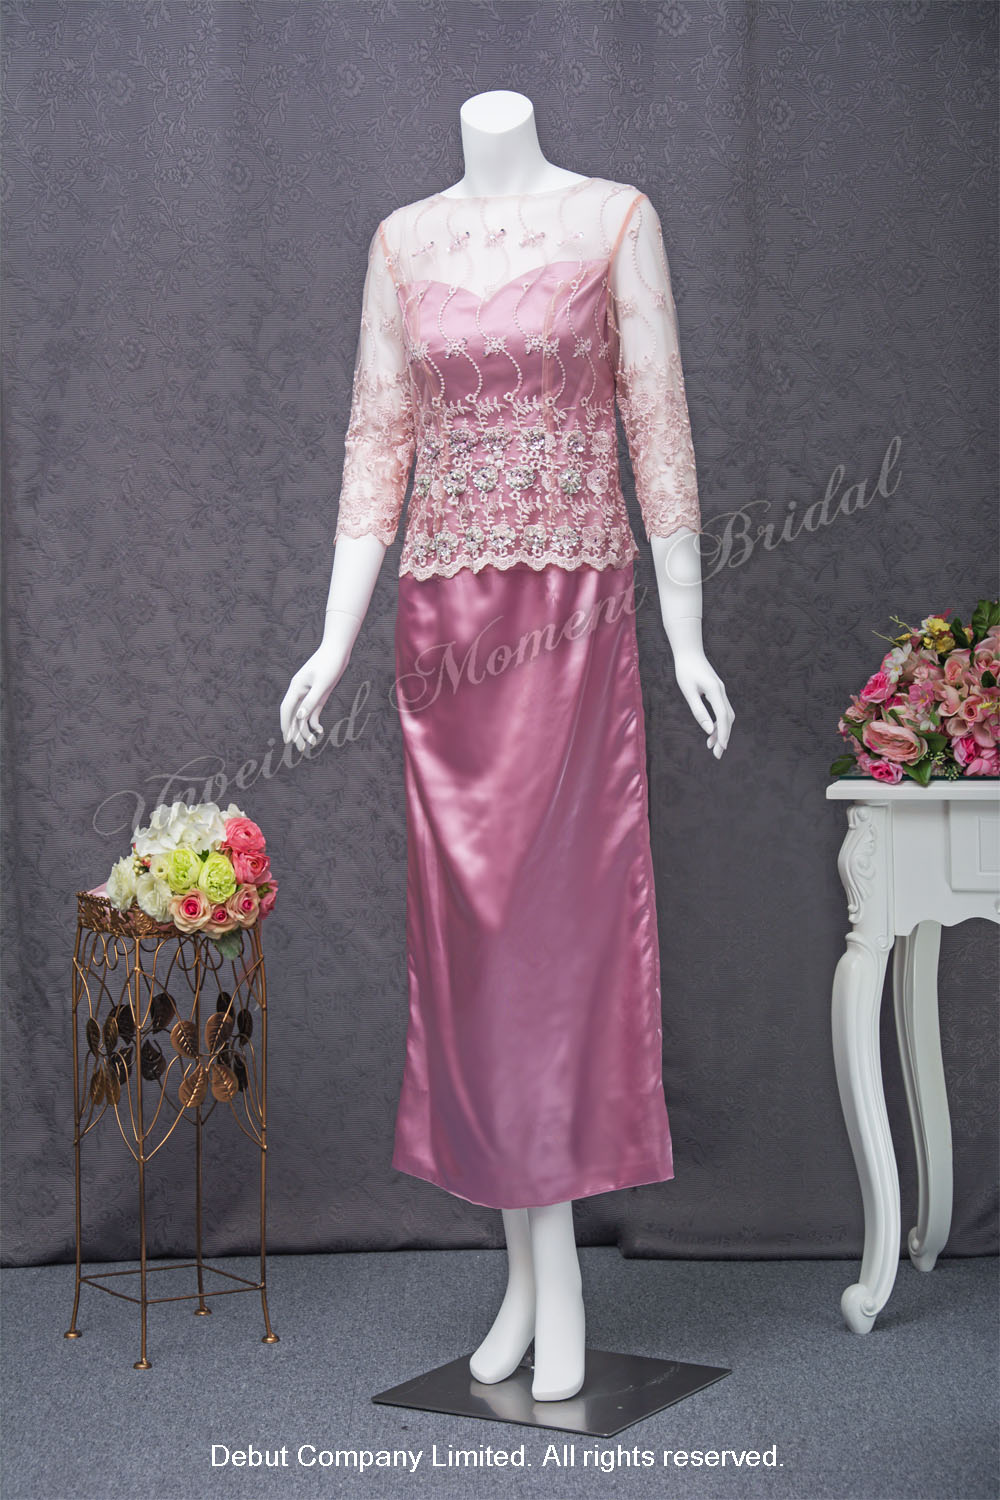 Peach mother-of-bridal dress with lace long sleeves. 薄紗蕾絲長袖桃紅色媽咪晚裝裙